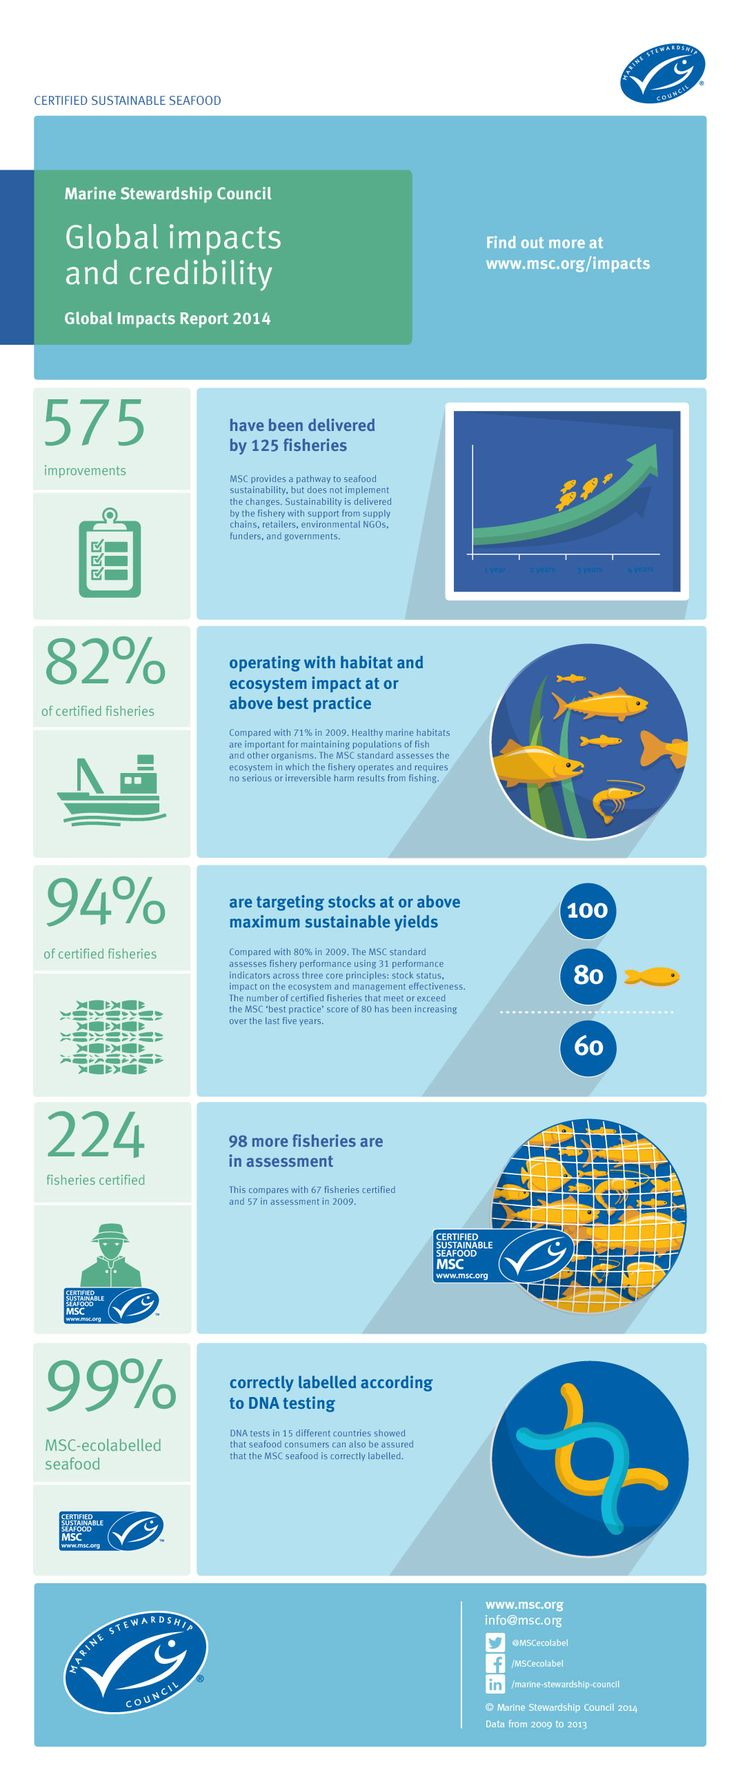 Marine Stewardship Council - Global Impacts and Credibility from Global Impacts Report 2014